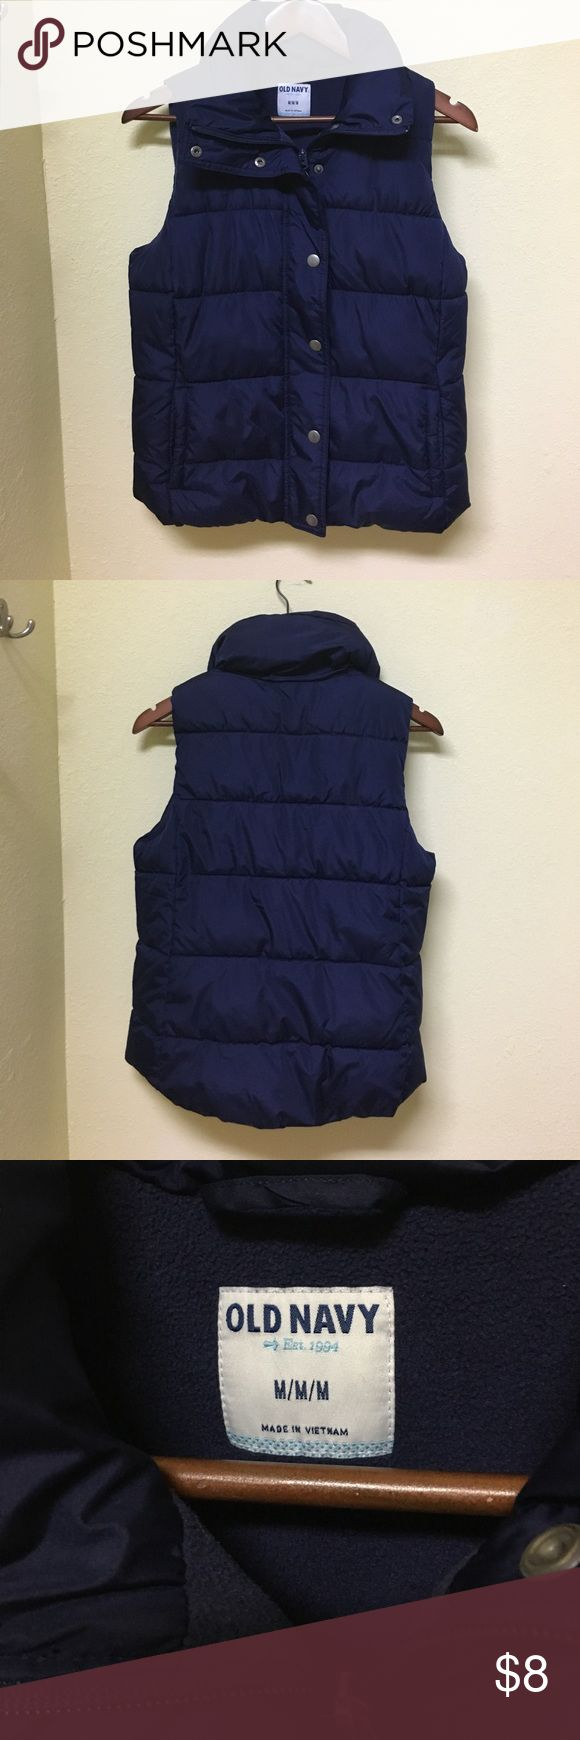 Old navy Woman's Size Medium Navy Blue Vest Old Navy Woman's Size Medium Navy Blue Puffer Vest. Vest is in a great condition!! Old Navy Jackets & Coats Vests